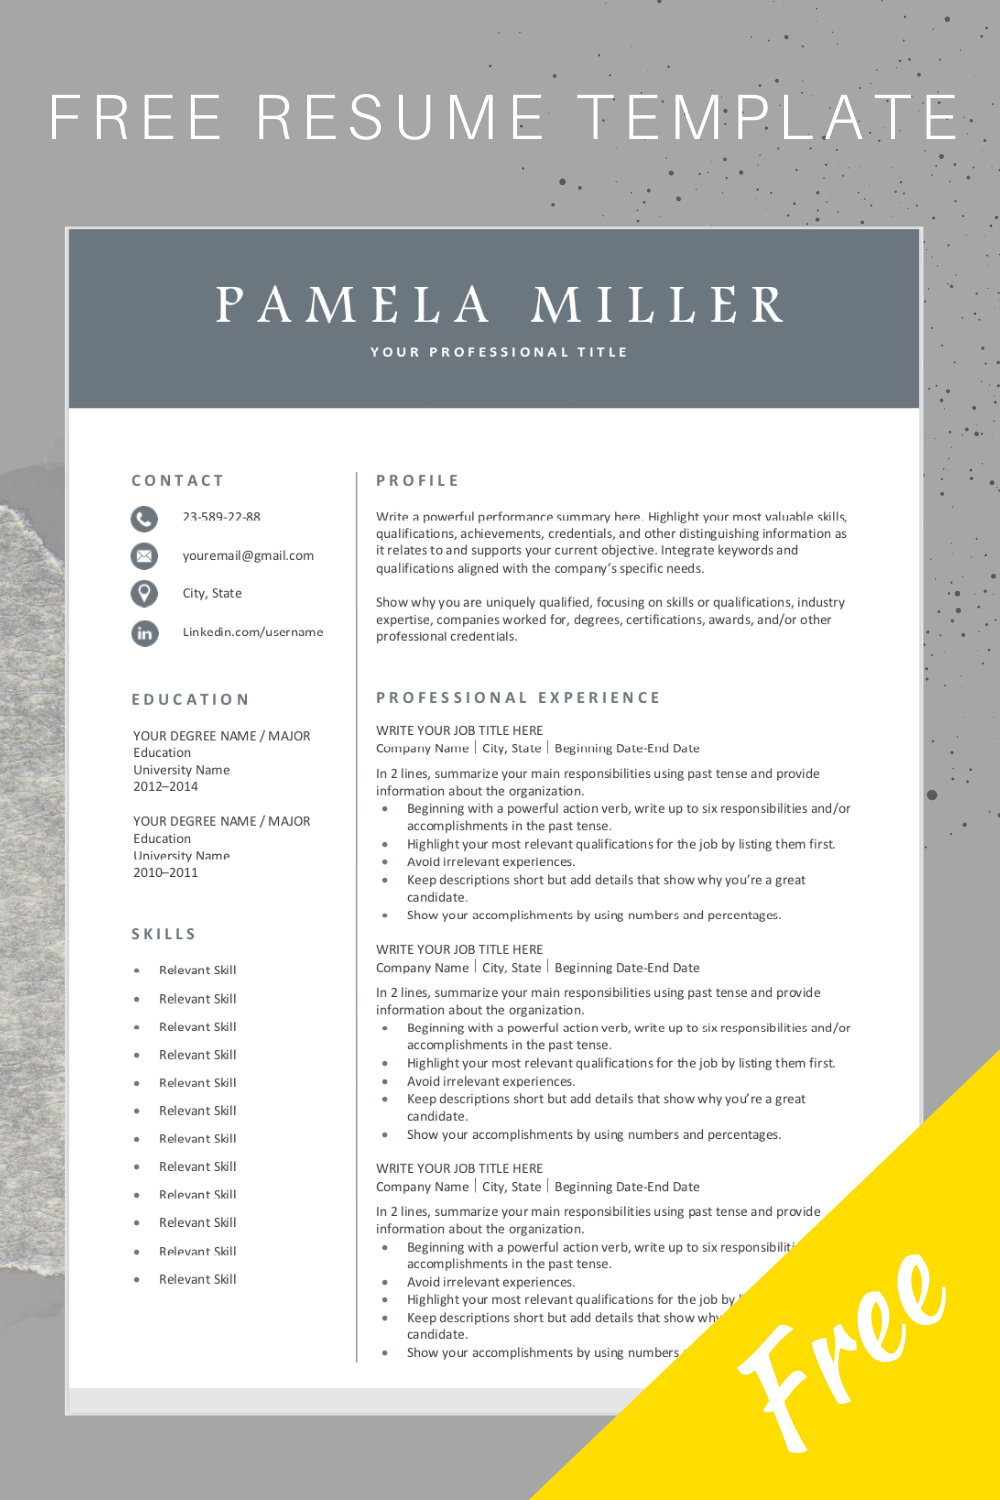 Free Resume Template Resume template free, Downloadable